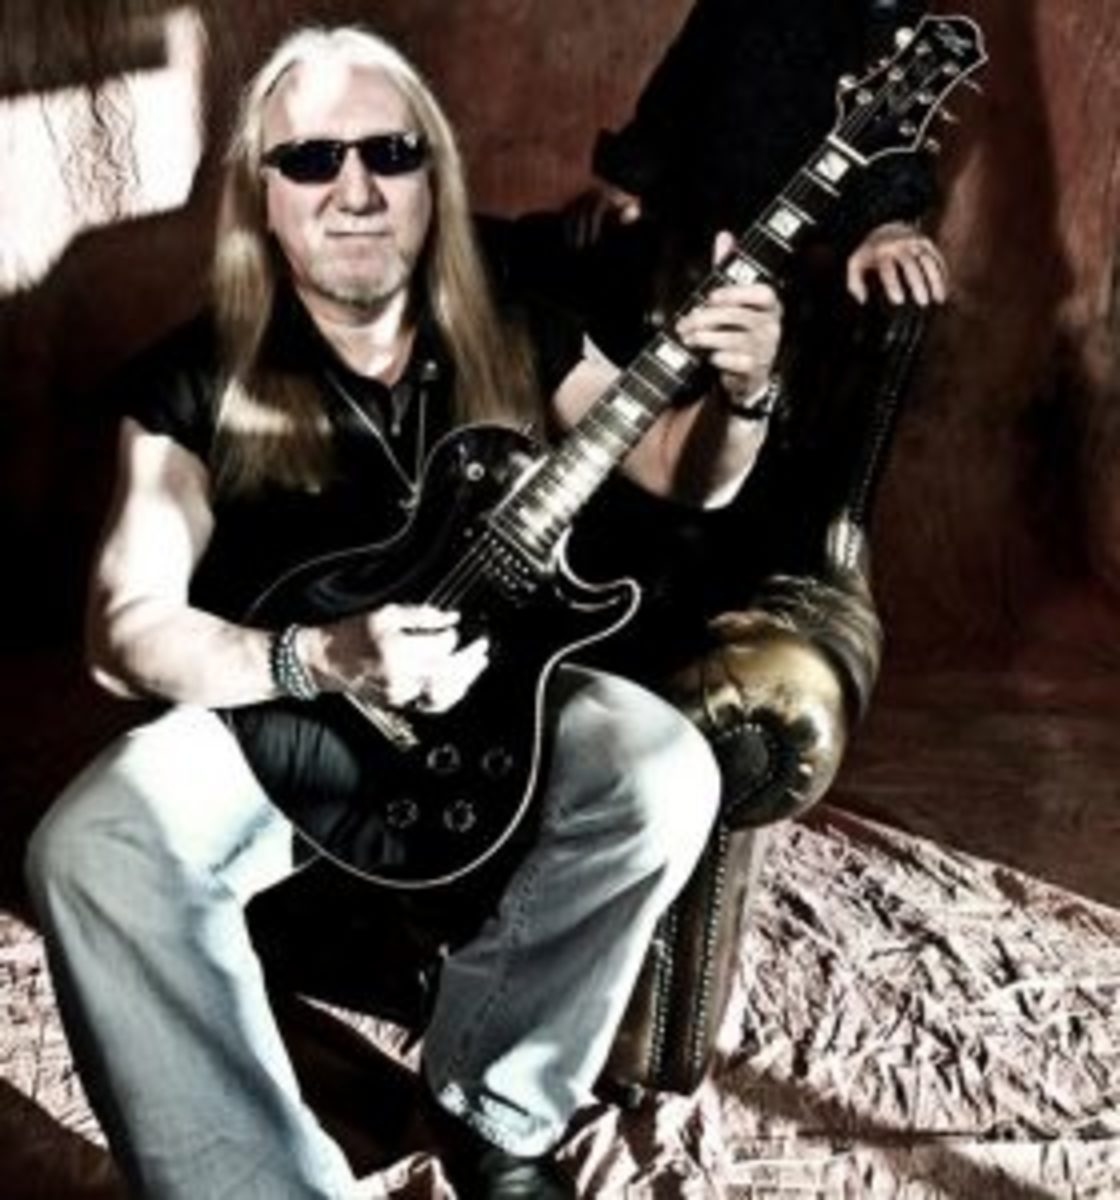 Lead guitarist Mick Box of Uriah Heep. Publicity photo